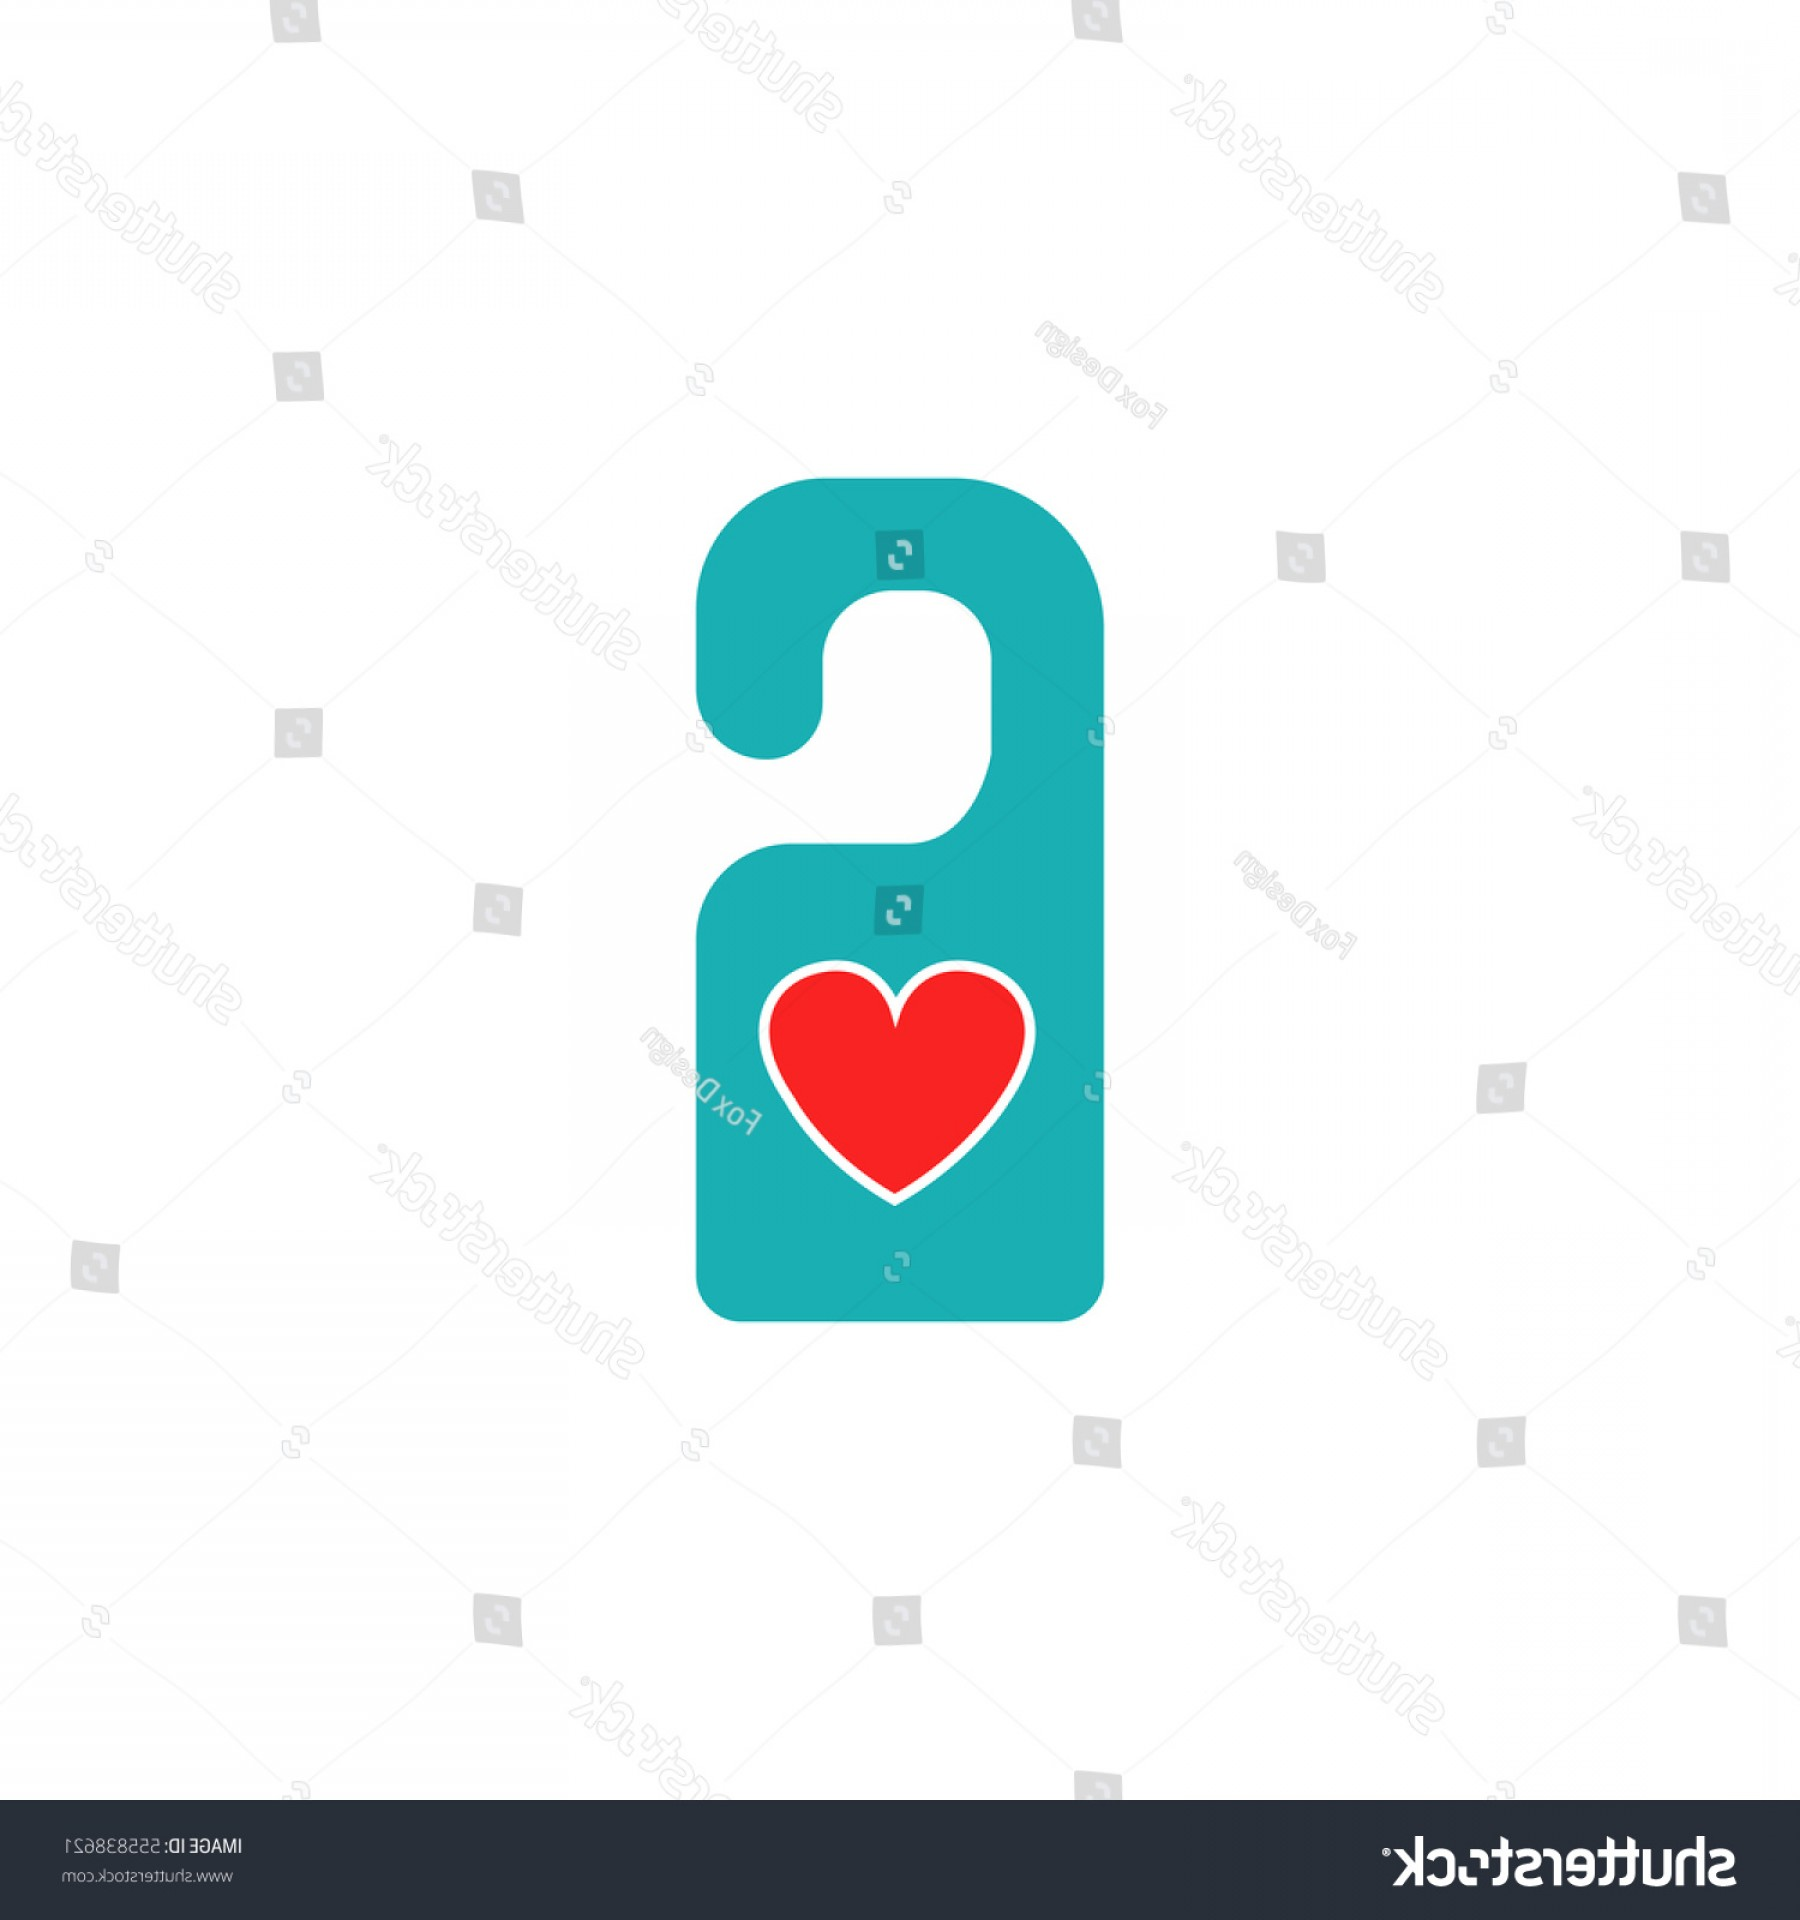 Solid Heart Vector Drawing: Do Not Disturb Heart Solid Icon